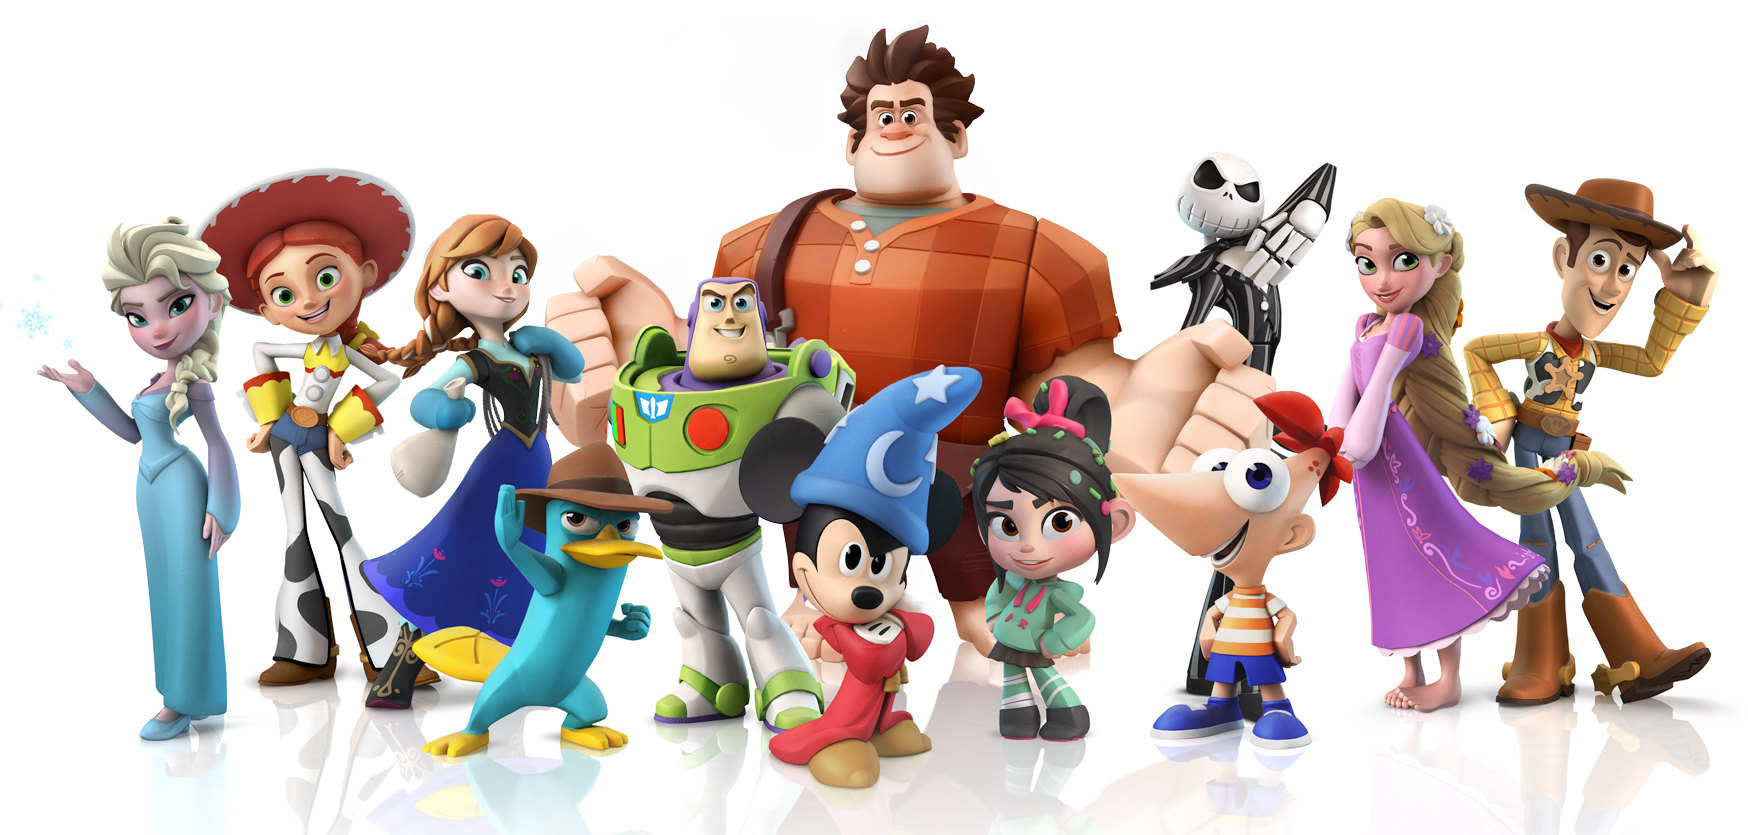 Disney Infinity Wave 2 Figures Include Mickey Mouse